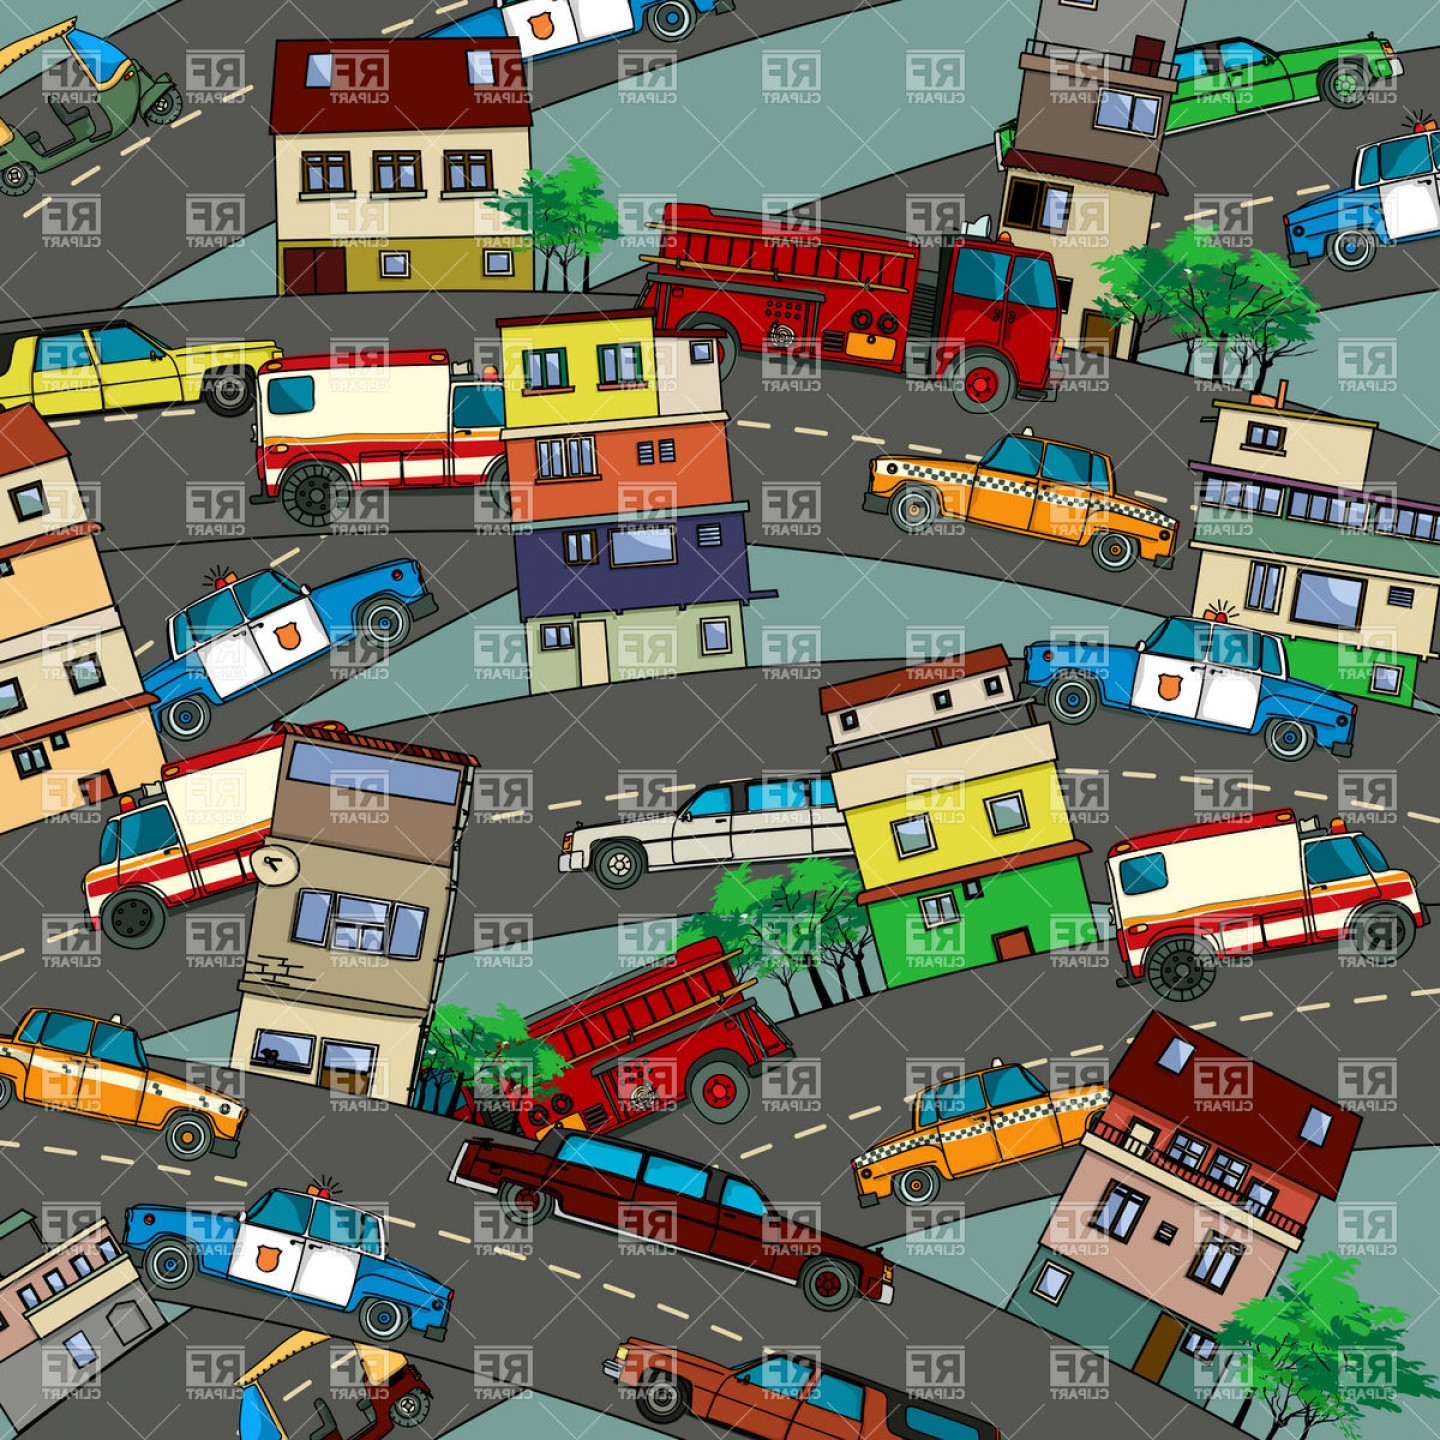 Vector Images Of Cars On Streets: Busy City With Streets Cars And Houses Urban Cityscape With Heavy Traffic Vector Clipart